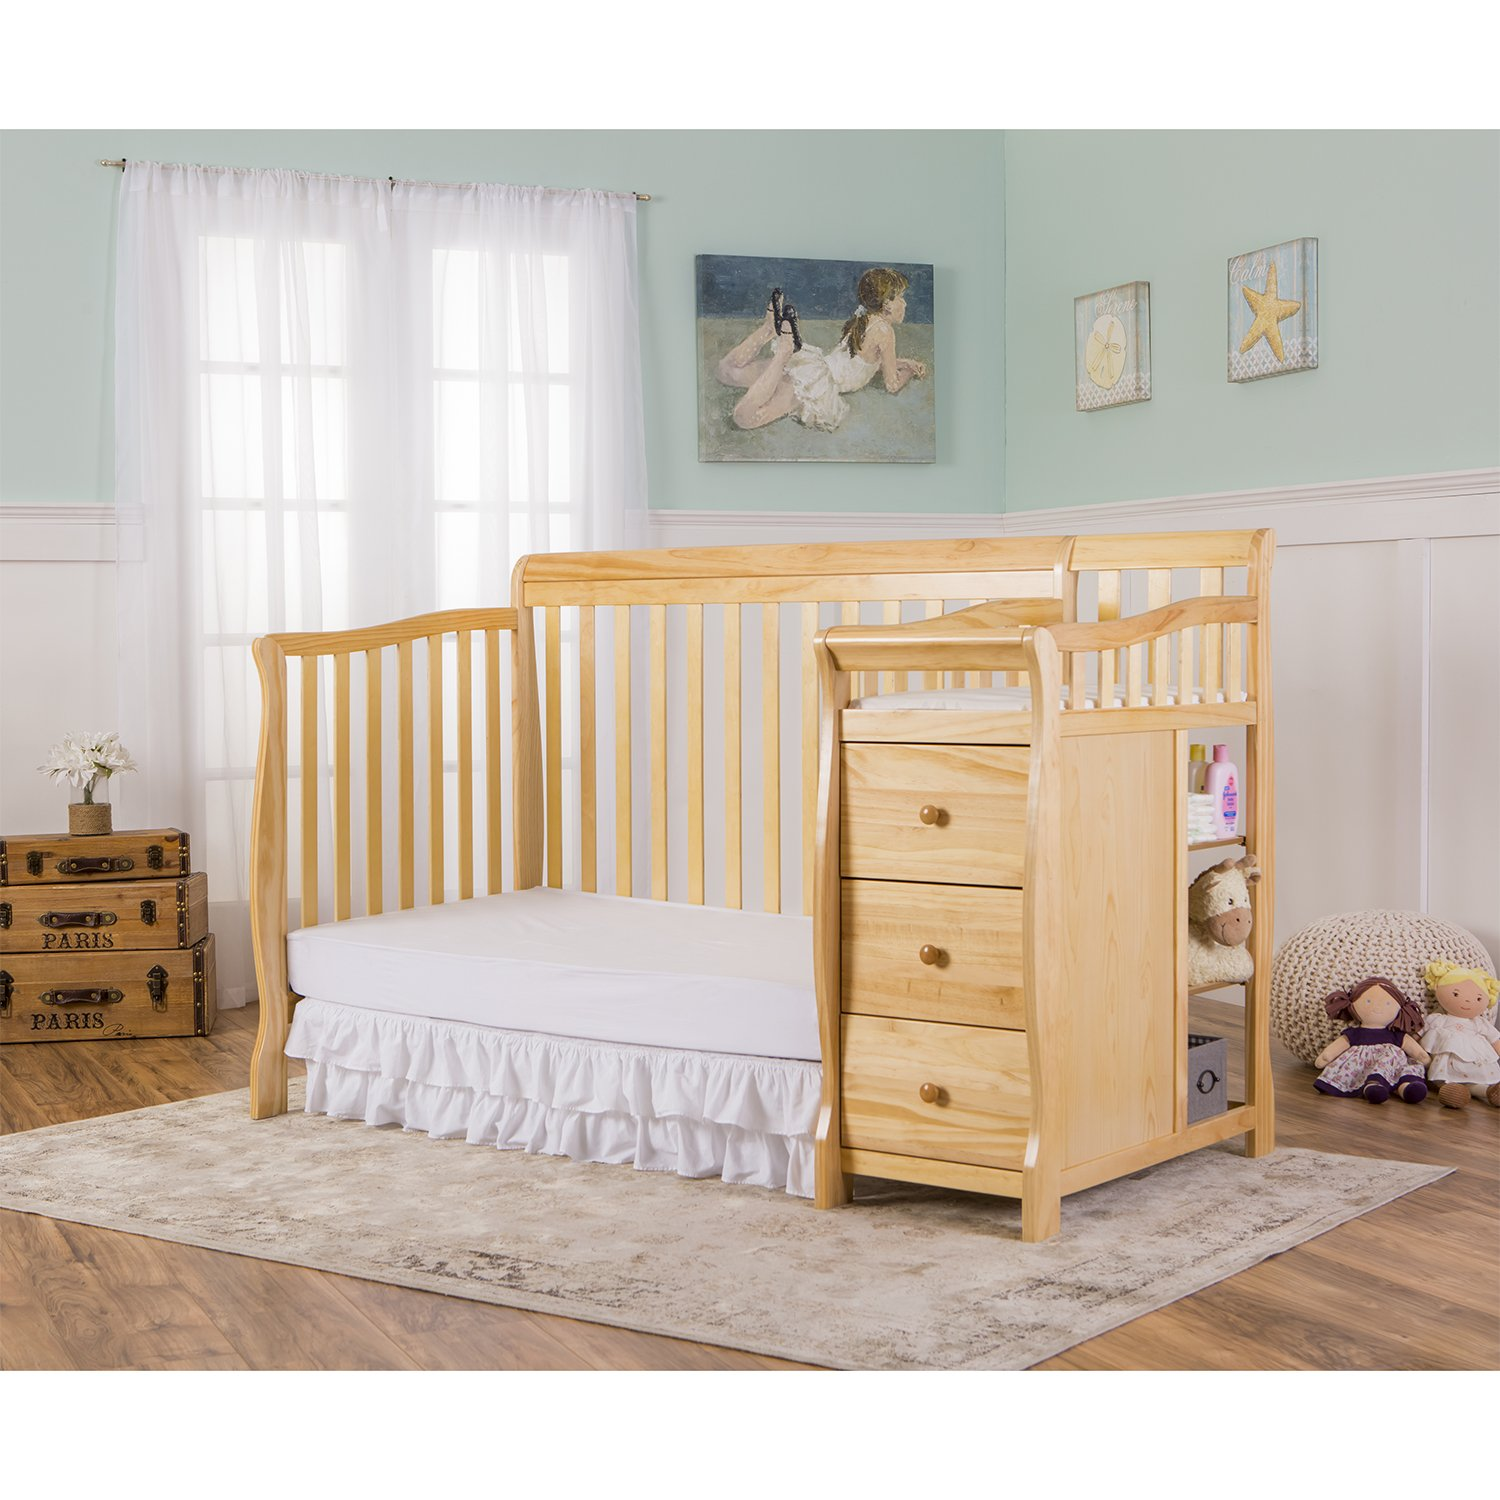 Dream On Me 5 in 1 Brody Convertible Crib with Changer, Natural by Dream On Me (Image #6)